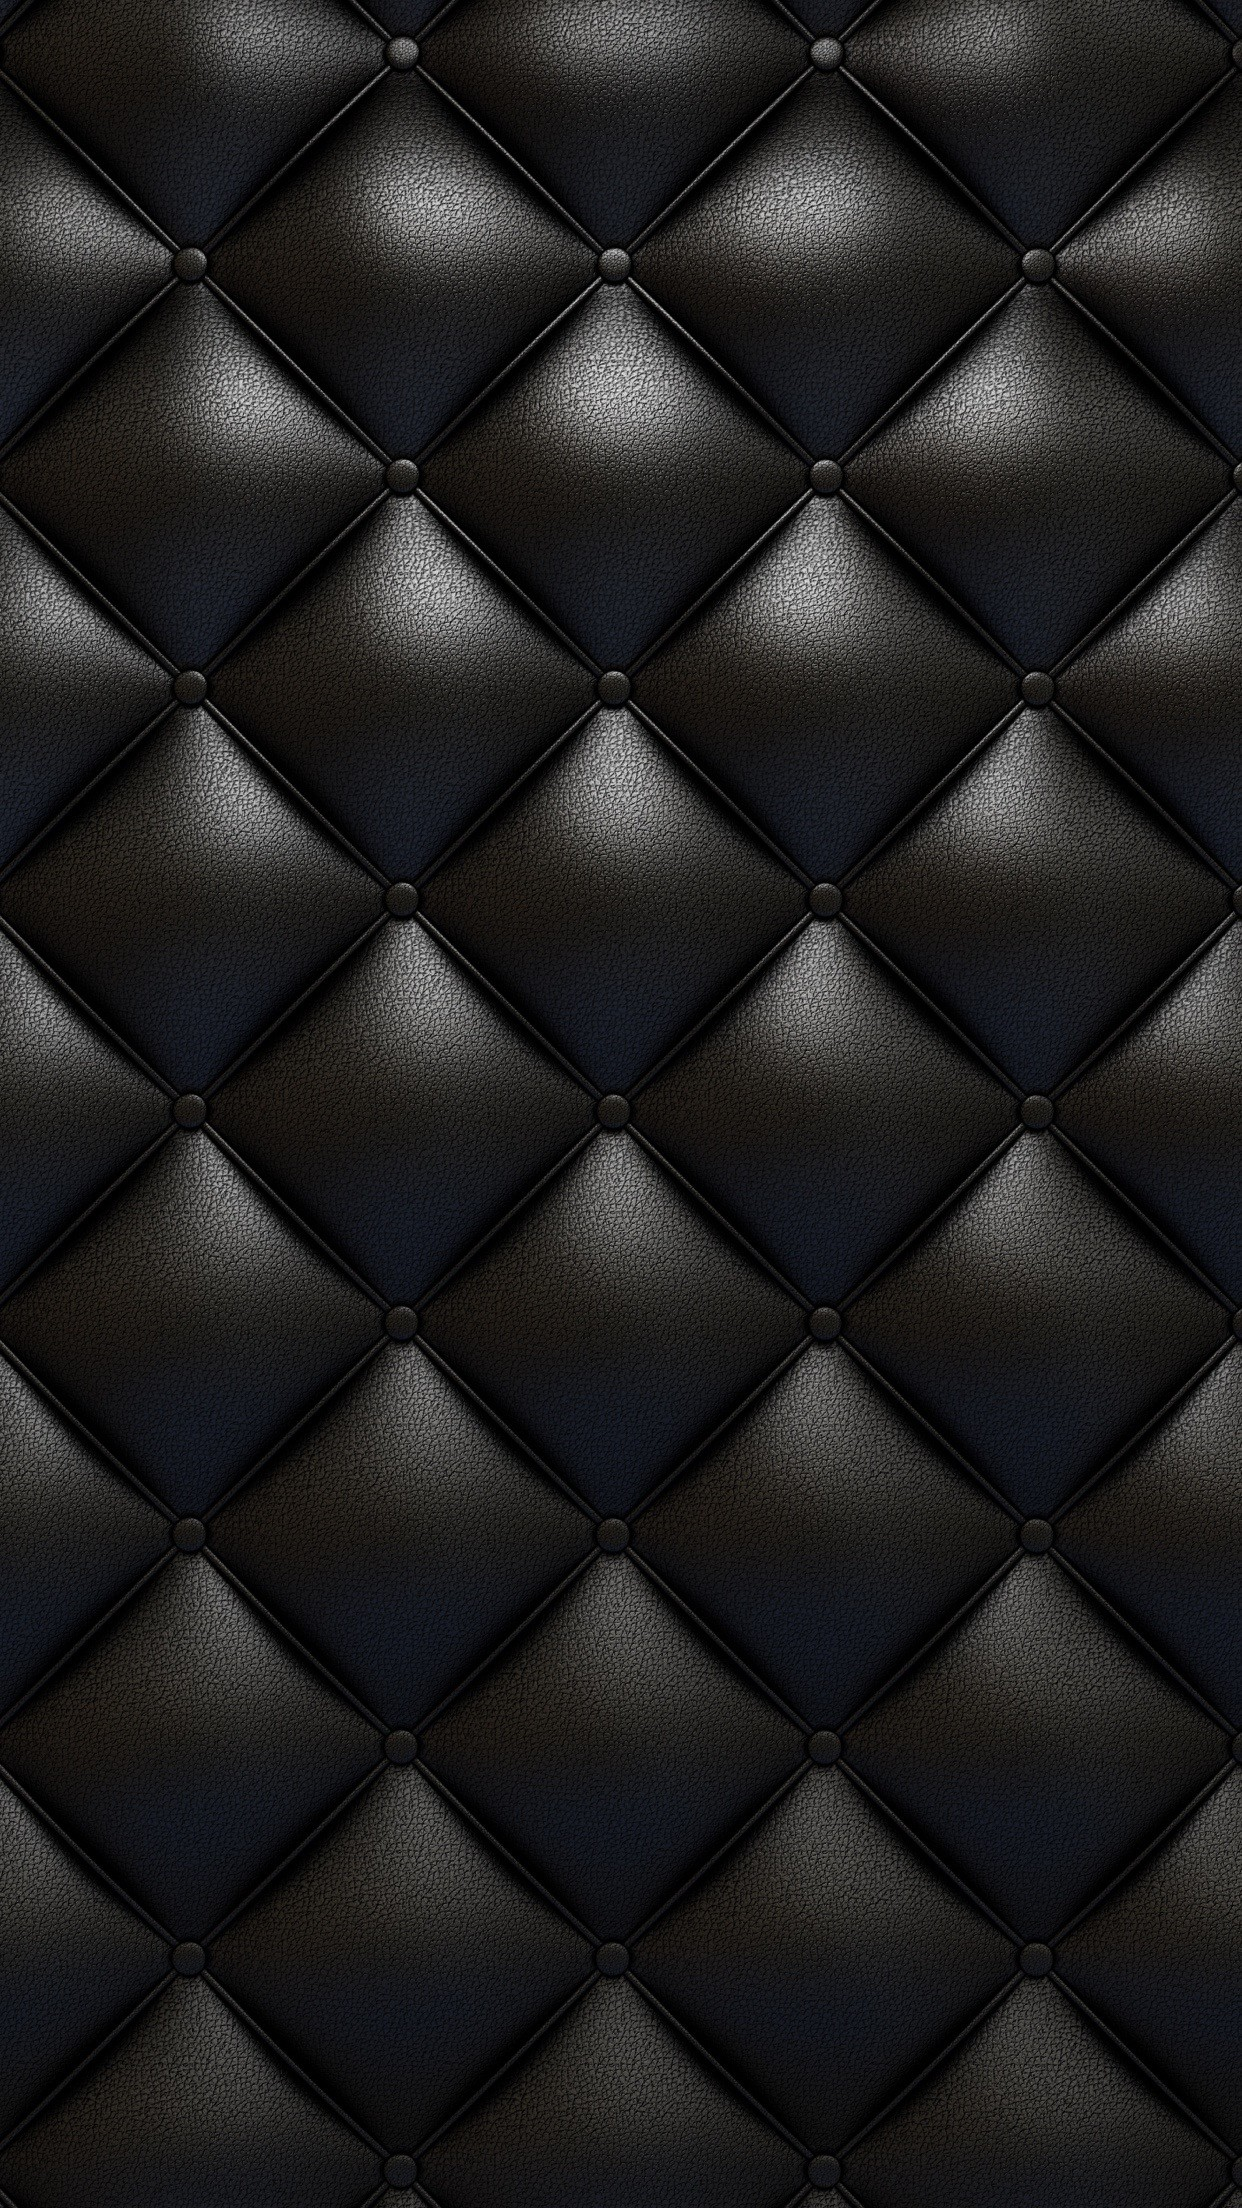 1242x2208 Black Leather, Iphone Wallpaper, Read